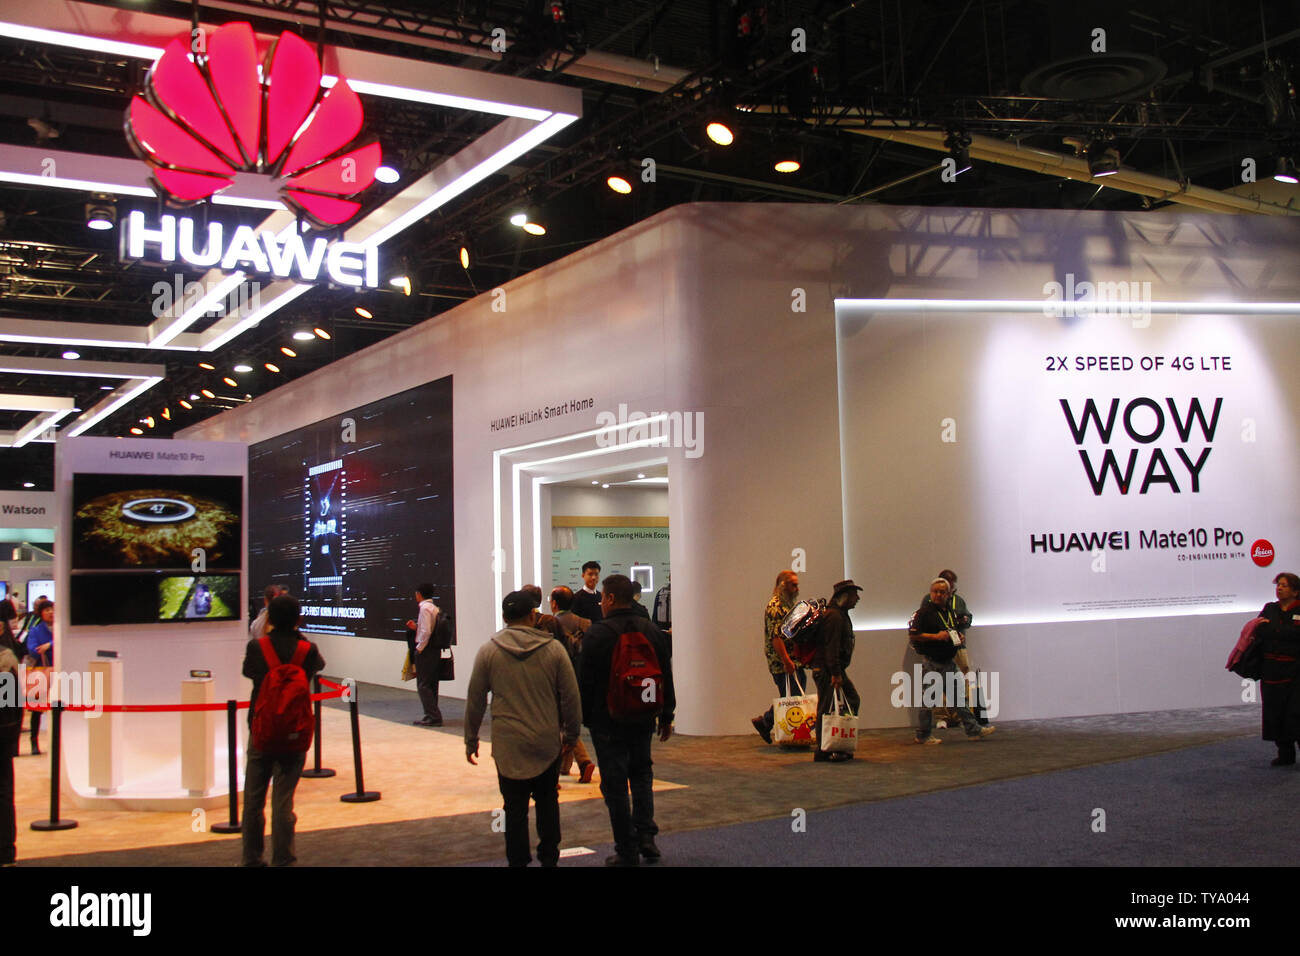 A view of the electronic manufacture, Huawei's booth displaying their 'Wow Way' marketing slogan of their Mate10 Pro smartphone and to familiarize customers with the pronunciation of their name, during the 2018 International CES, at the Las Vegas Convention Center in Las Vegas, Nevada, January 9, 2018. Photo by James Atoa/UPI - Stock Image